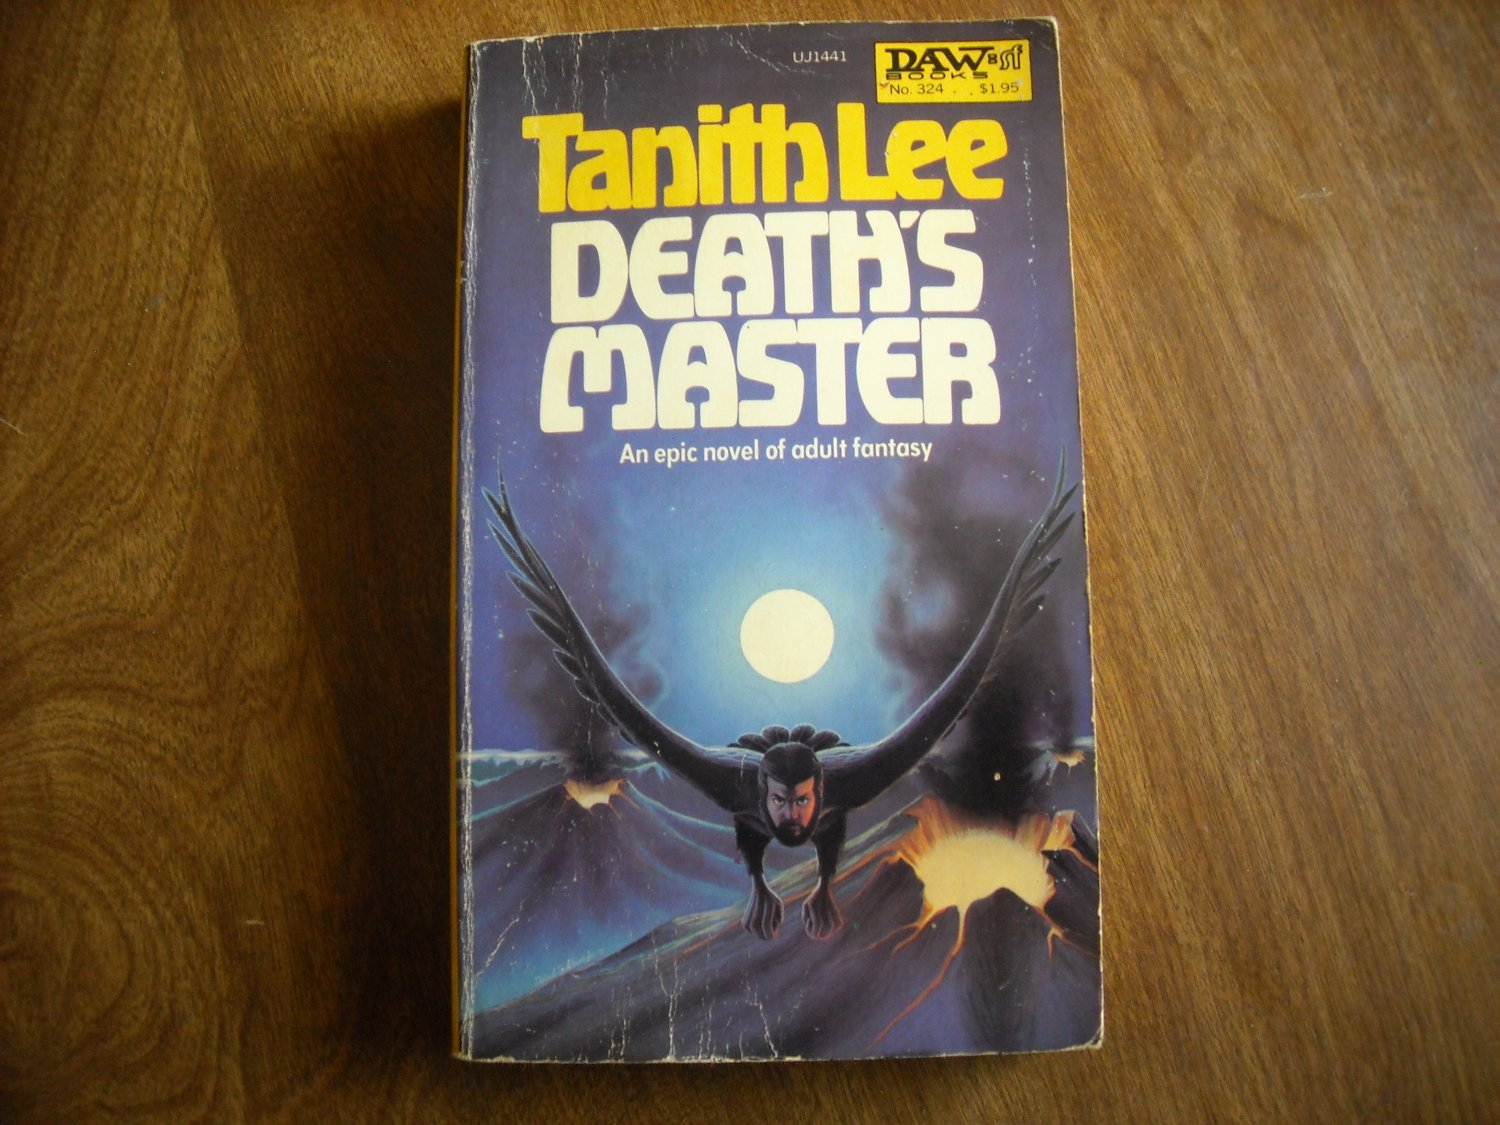 Death's Master by Tanith Lee  No. 324 (1979) (WCC4) an epic novel of adult fantasy